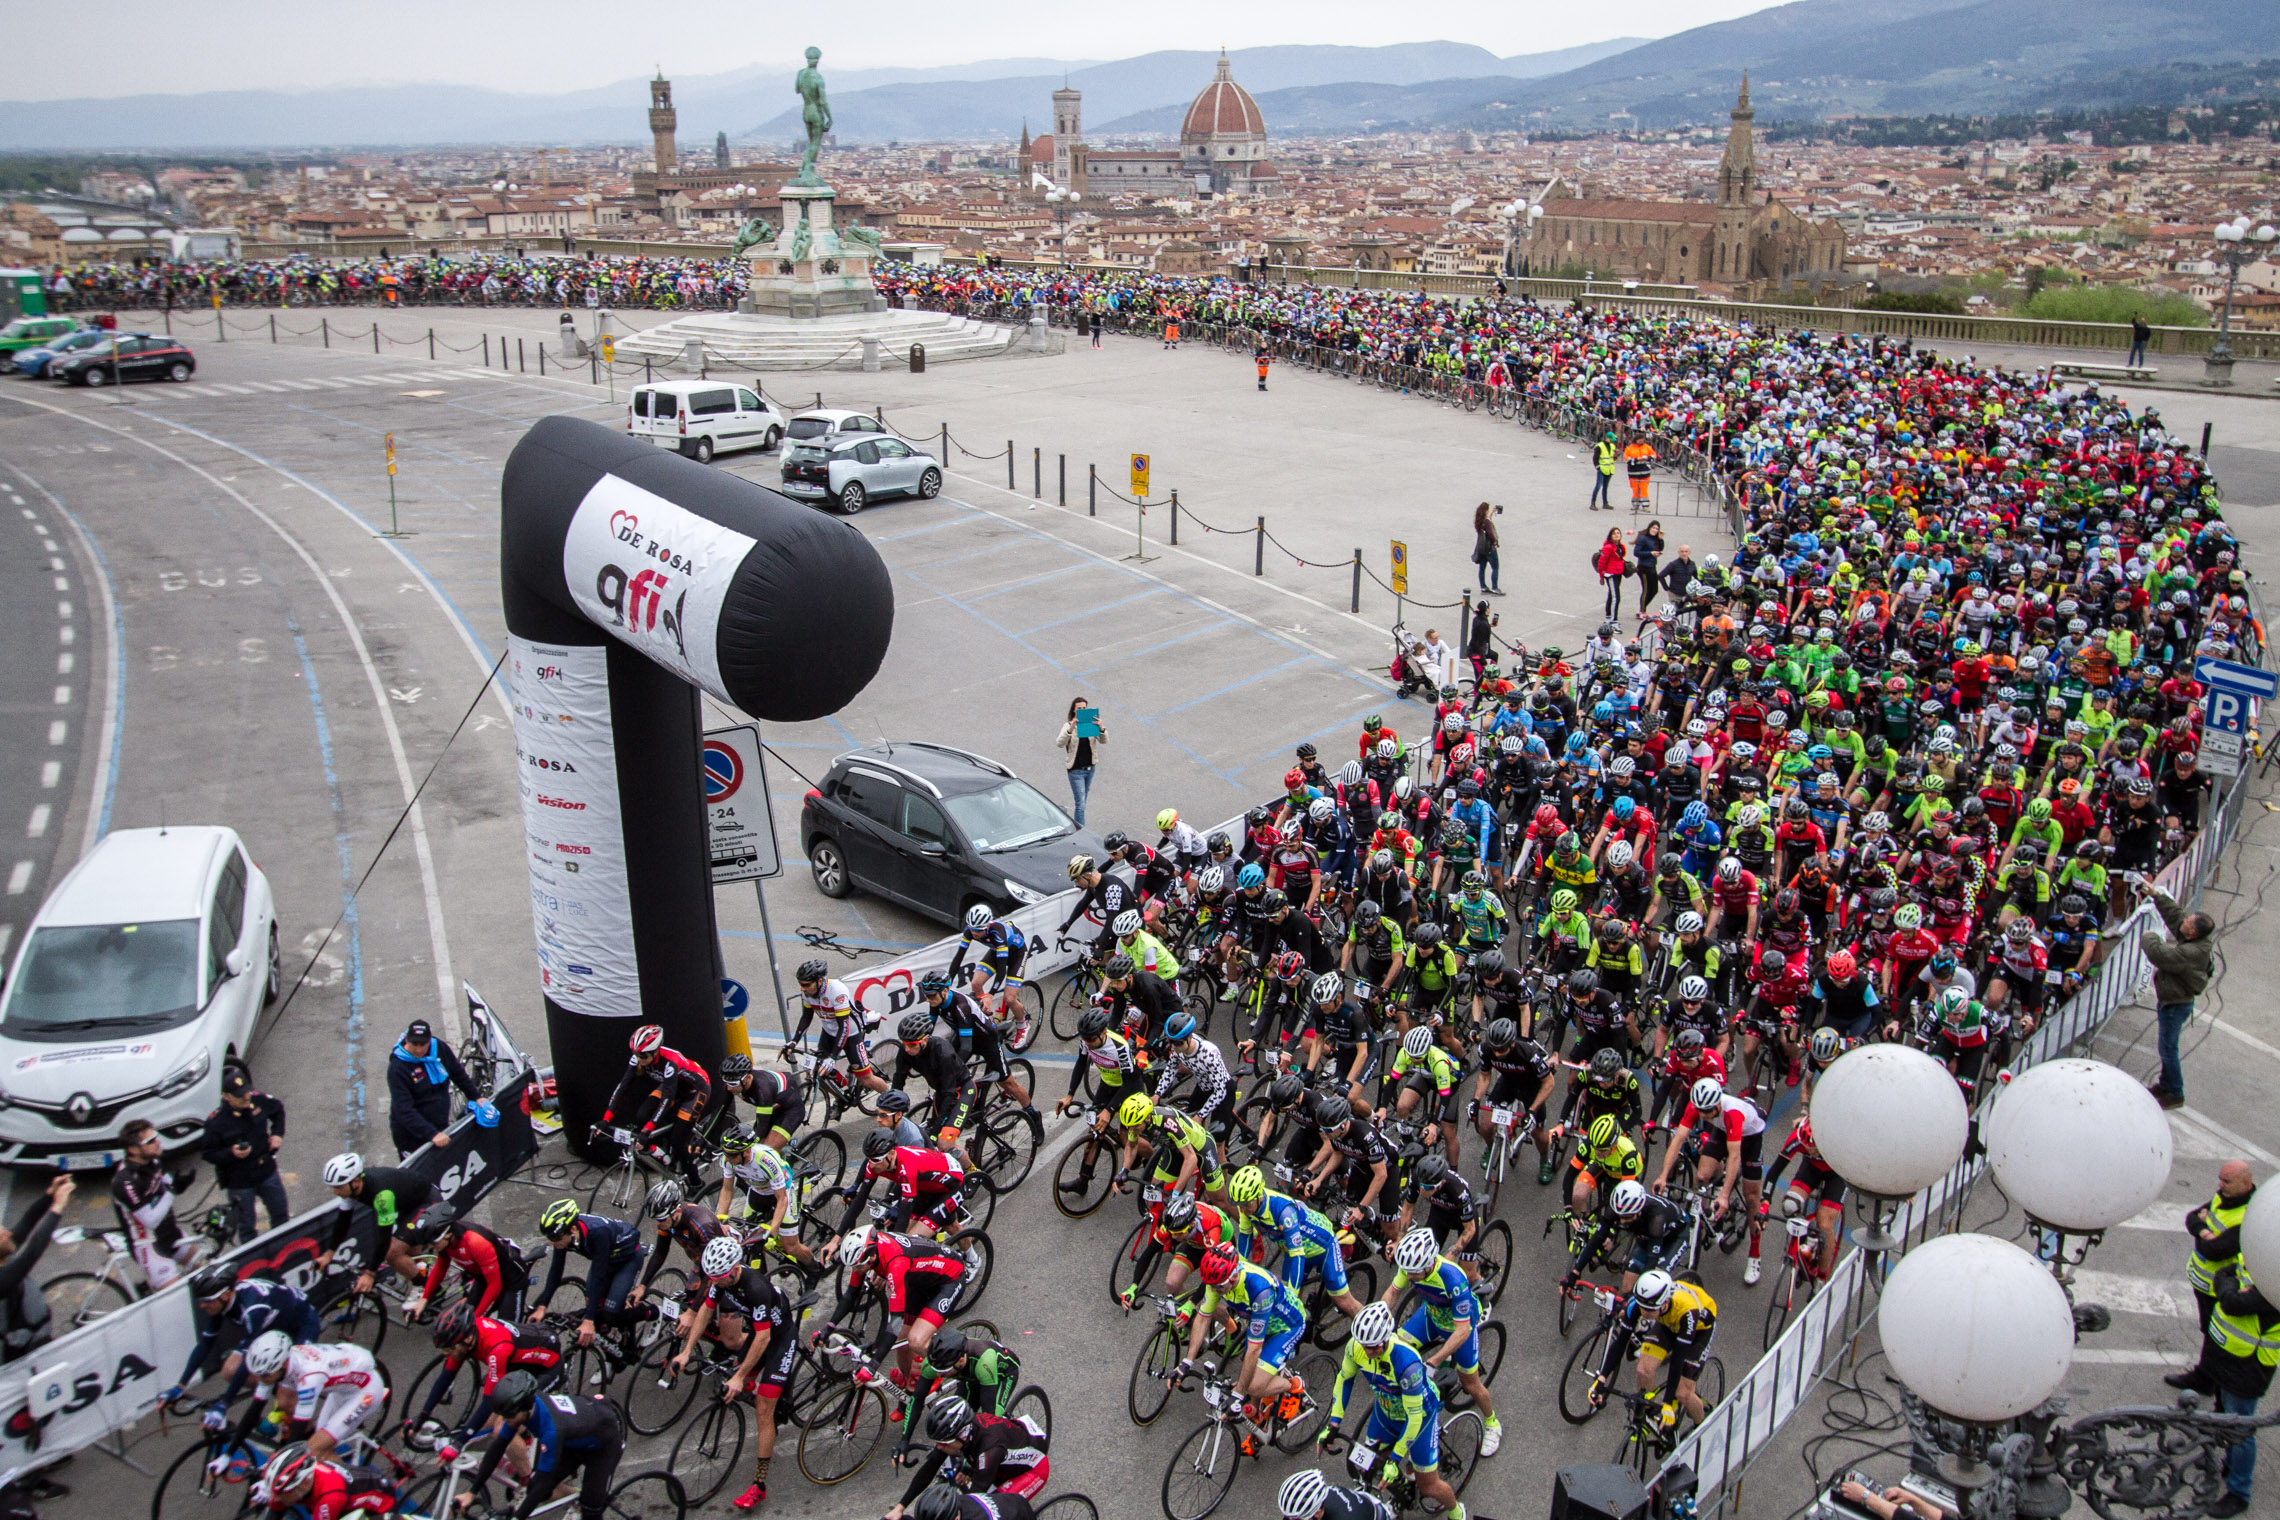 The registrations of the Granfondo Firenze 2019 are open